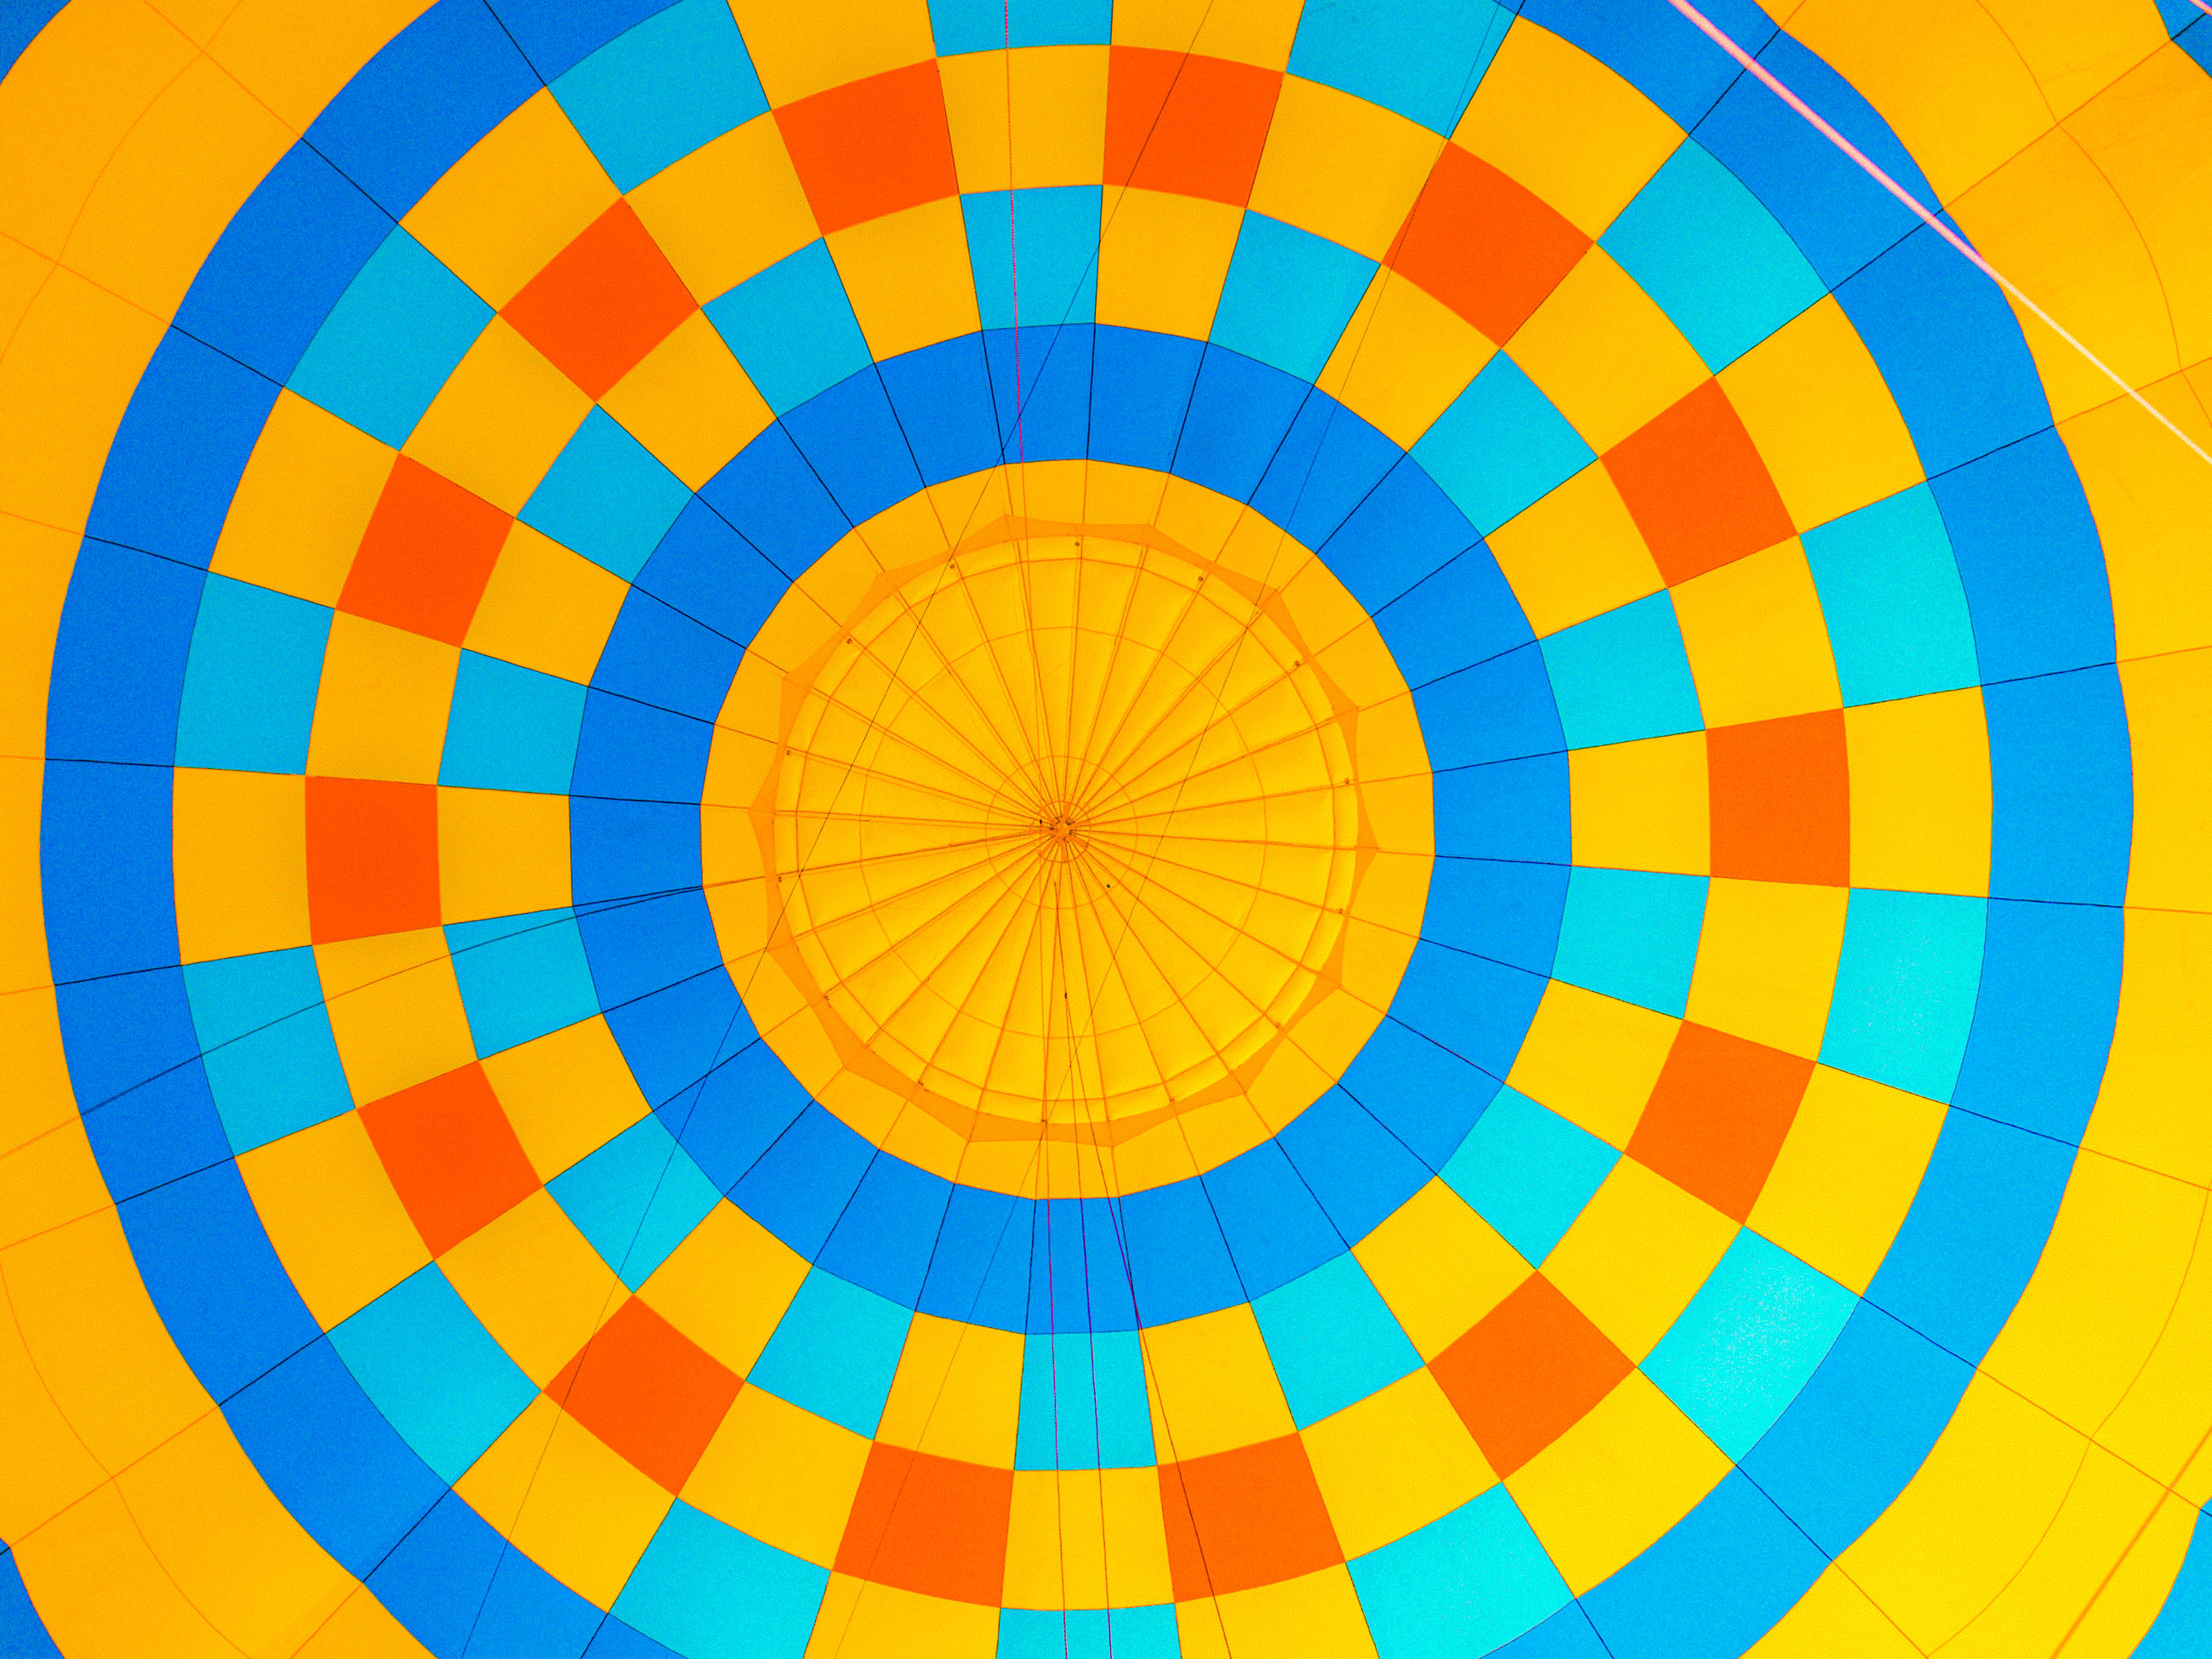 FULL FRAME SHOT OF MULTI COLORED HOT AIR BALLOONS